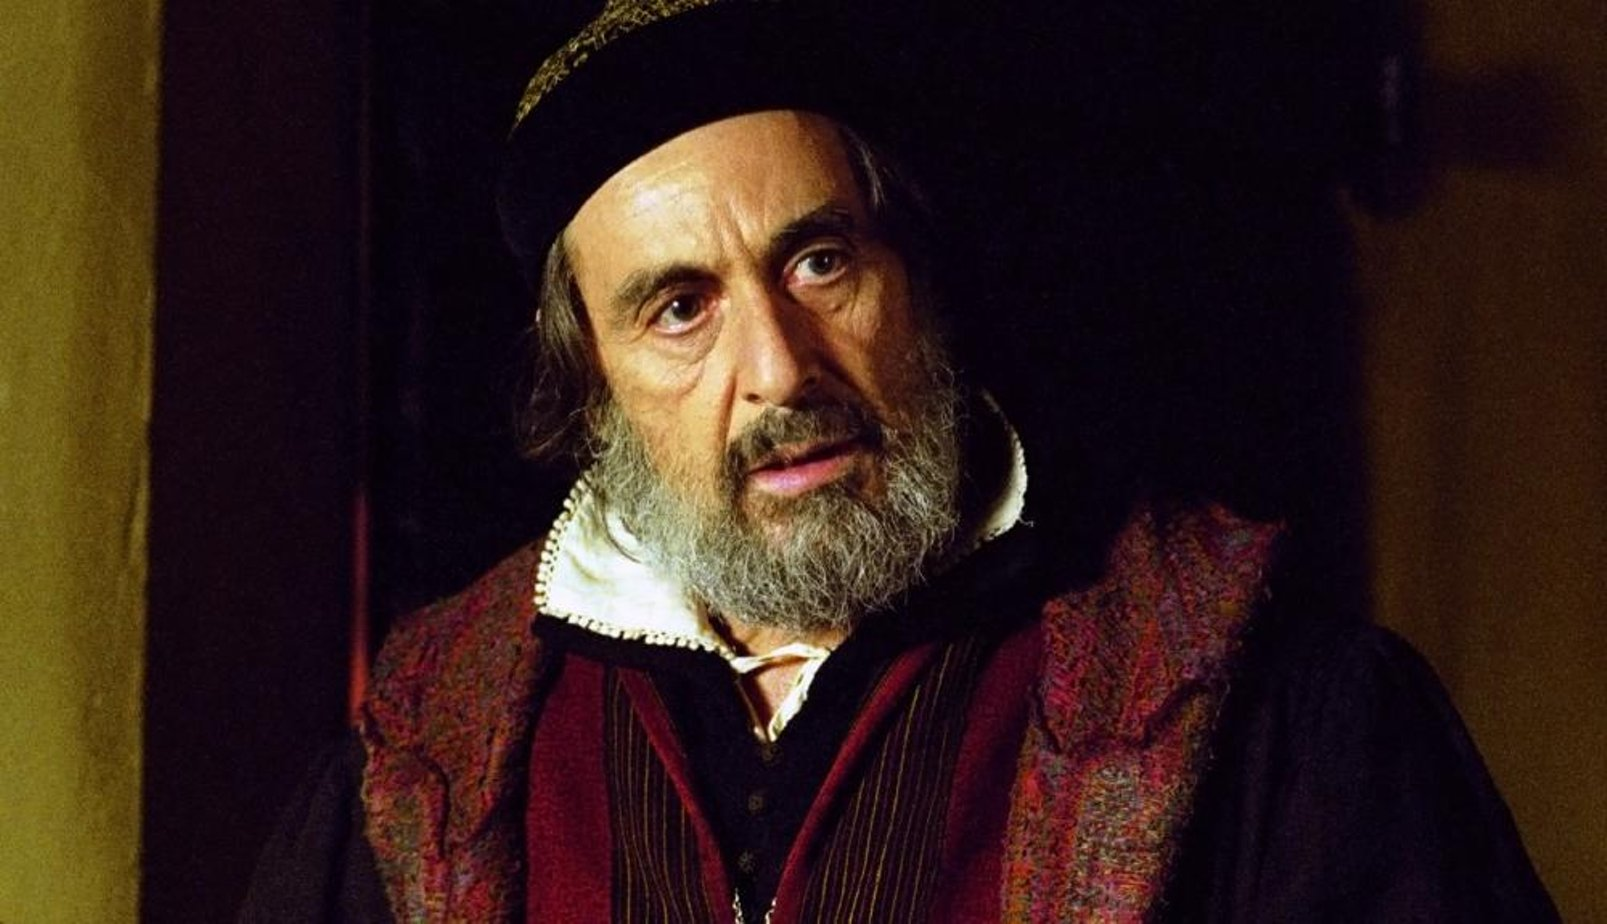 an analysis of the characterization of shylock the antagonist of william shakespeares play merchant